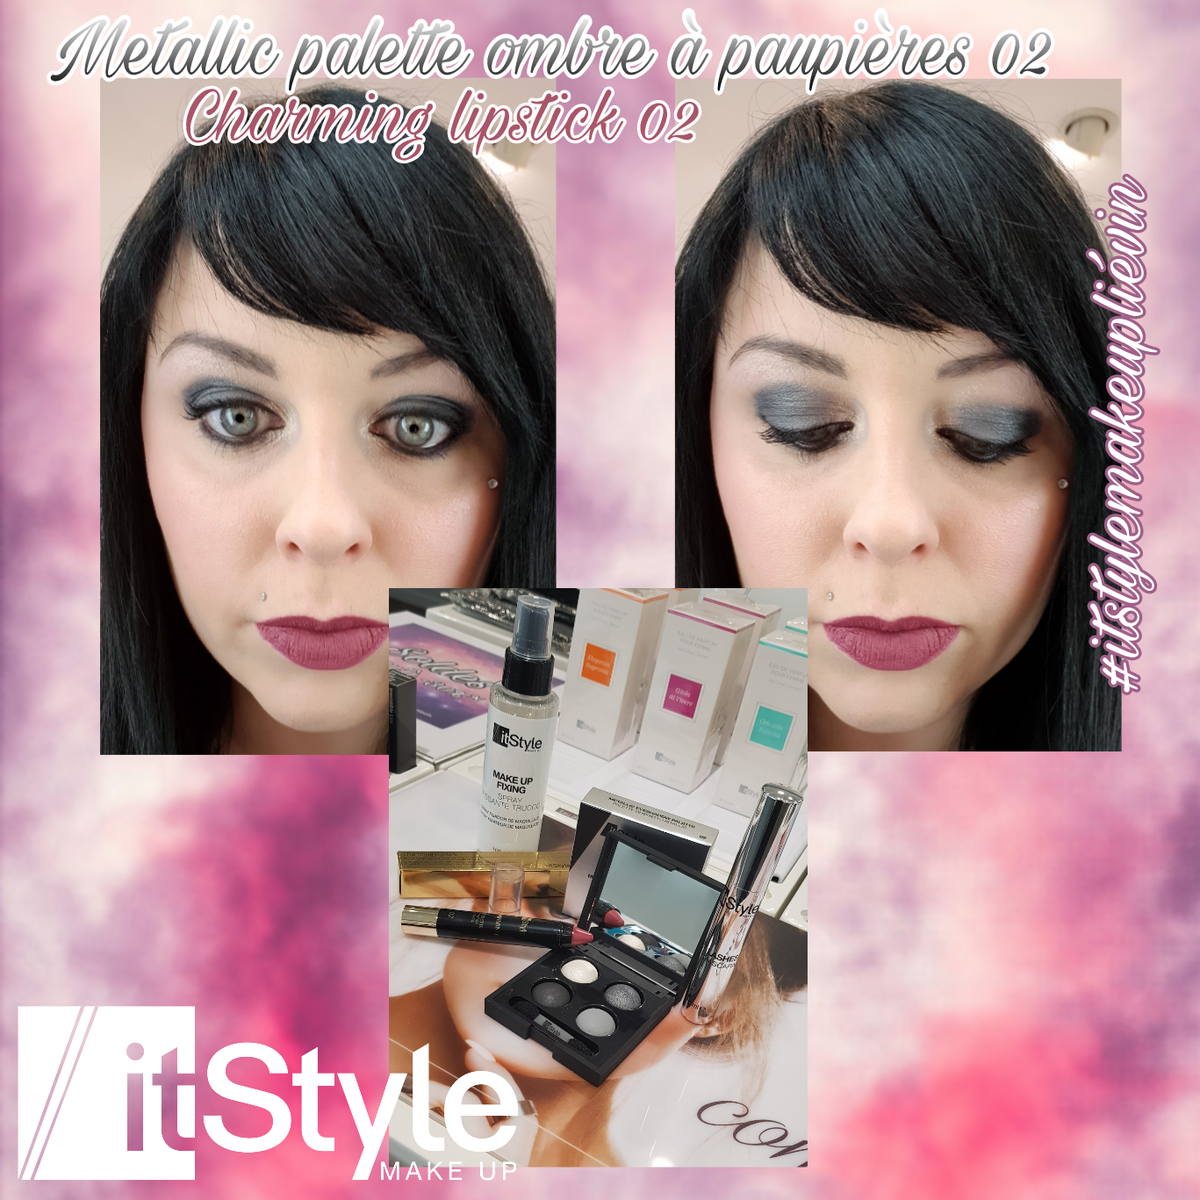 Souvent maquillage hashtag on Twitter AQ52